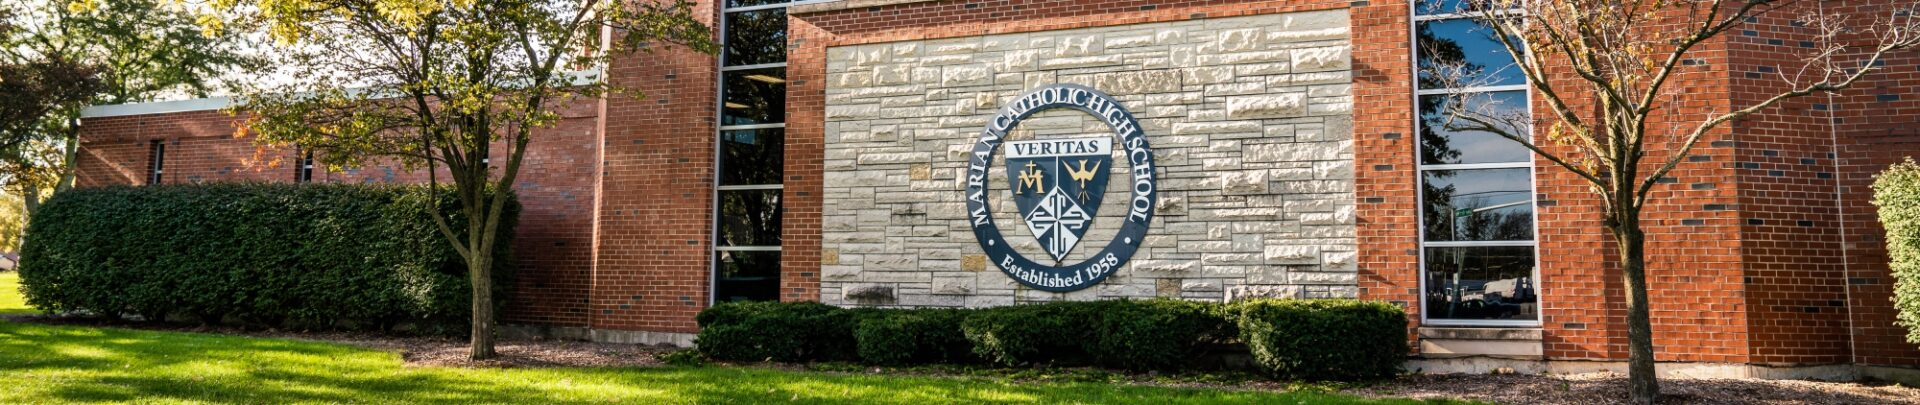 Chicago-Marian-Catholic-High-School-so-Study-USA